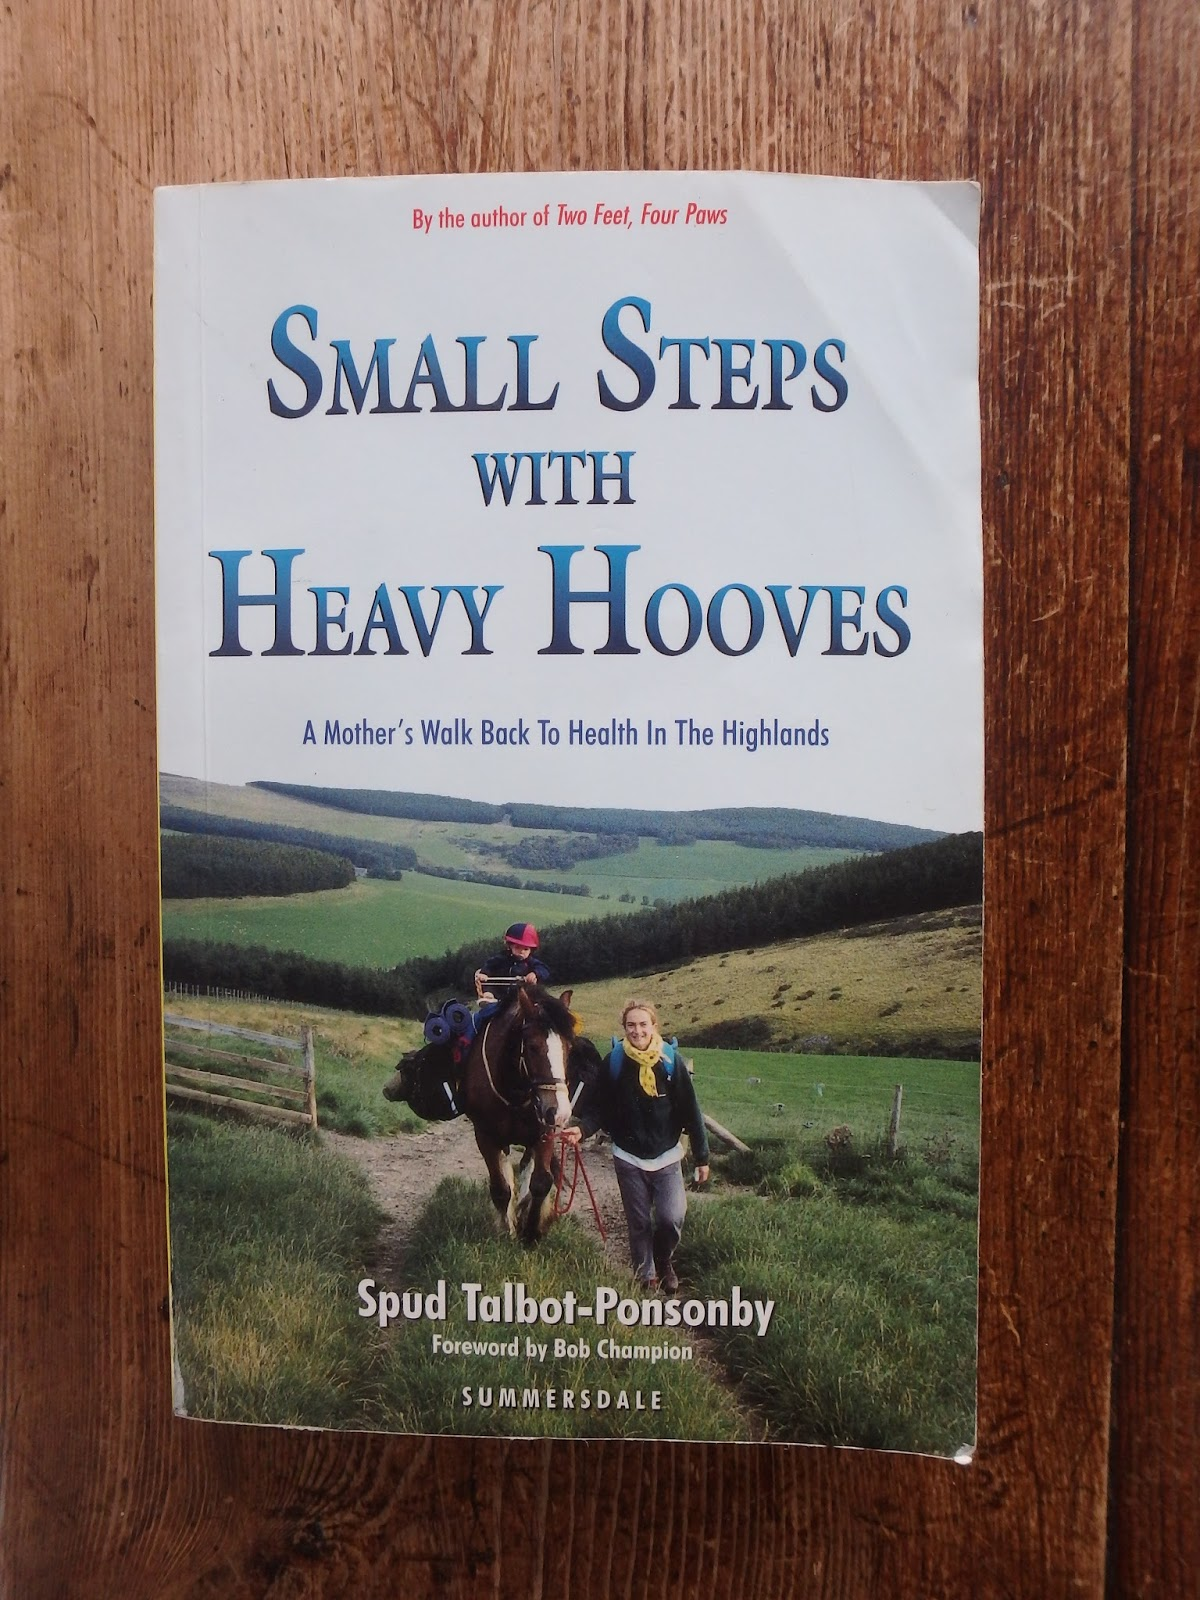 small steps with paws and hooves talbot ponsonby spud